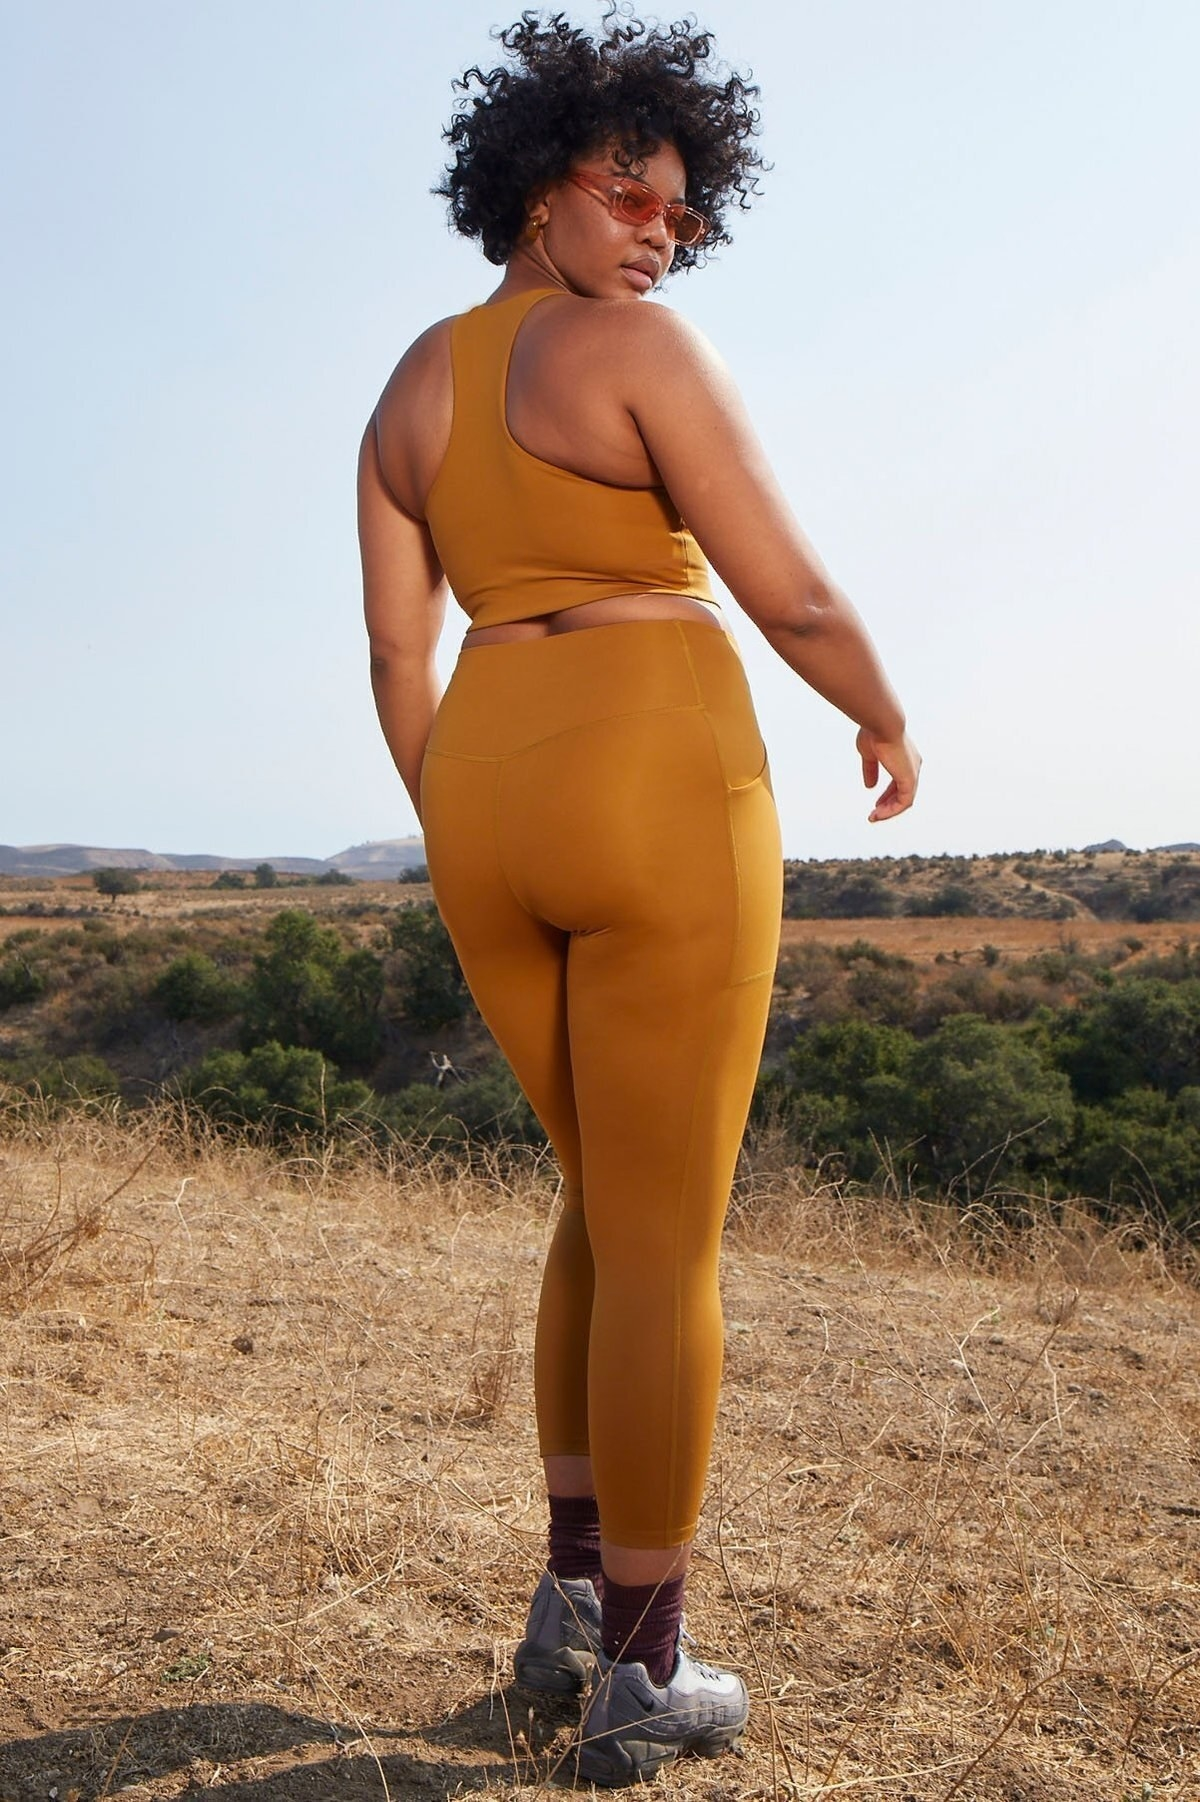 Model wears high-rise golden leggings with a matching racerback bra